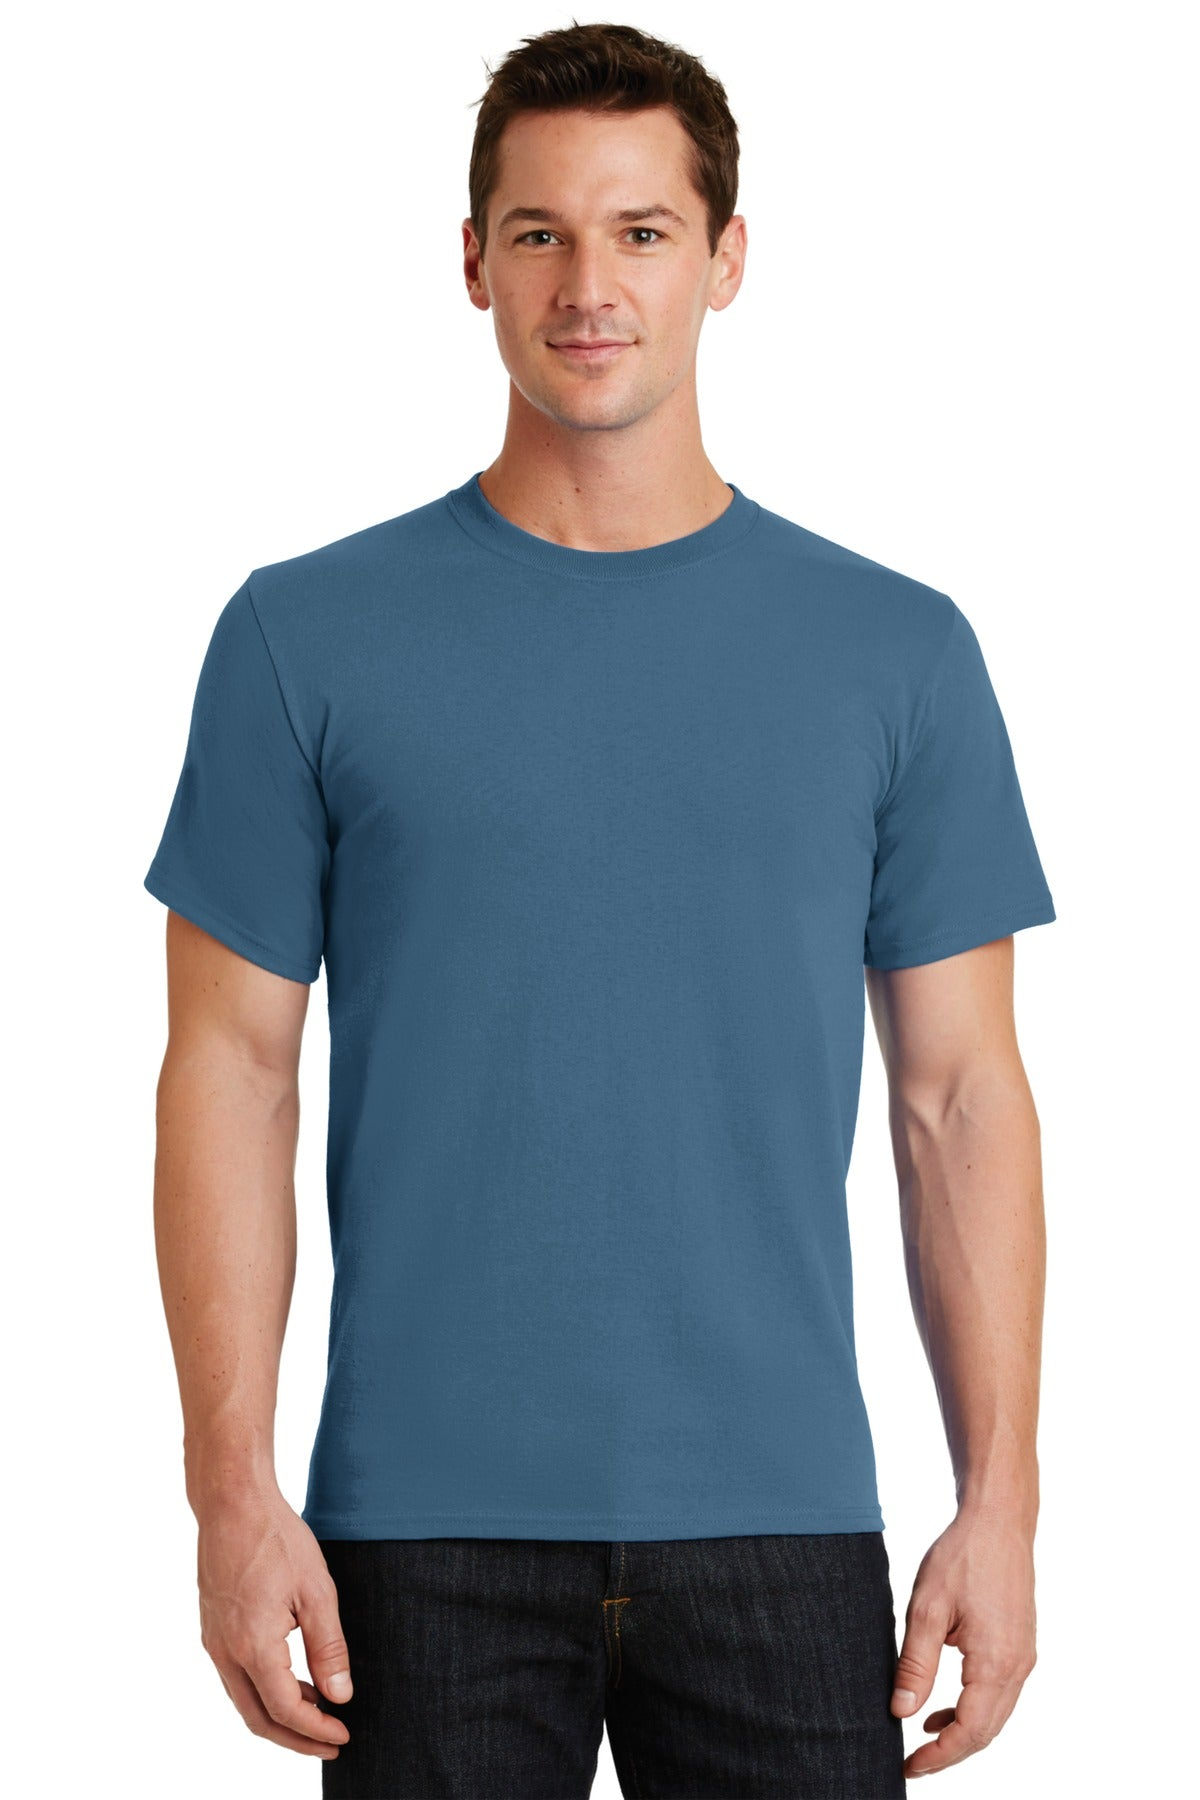 Colonial Blue Port & Company - Essential T-Shirt